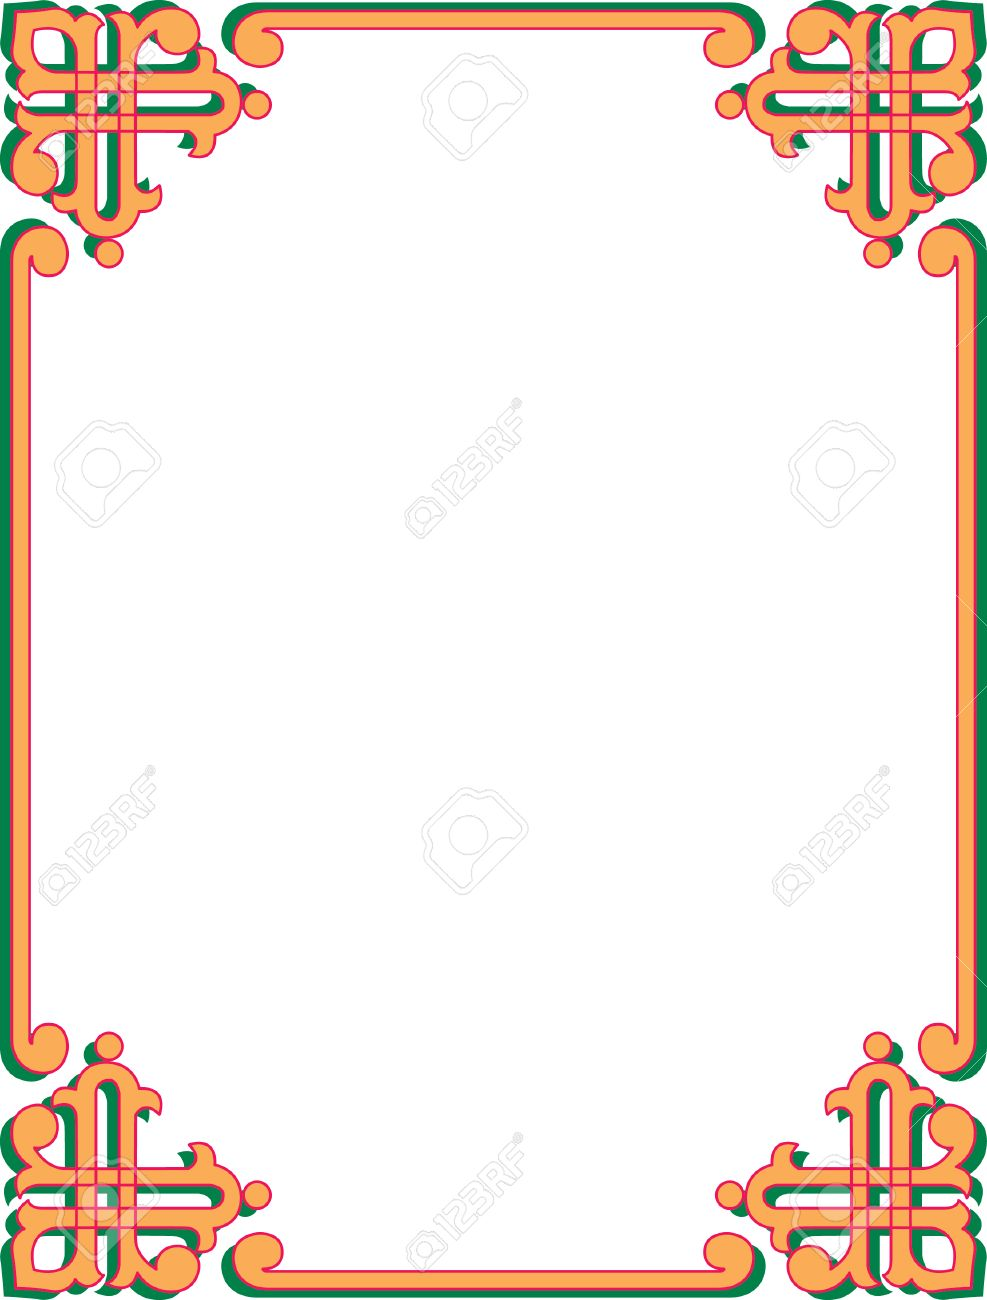 Simple Corner Border Frame Stock Vector